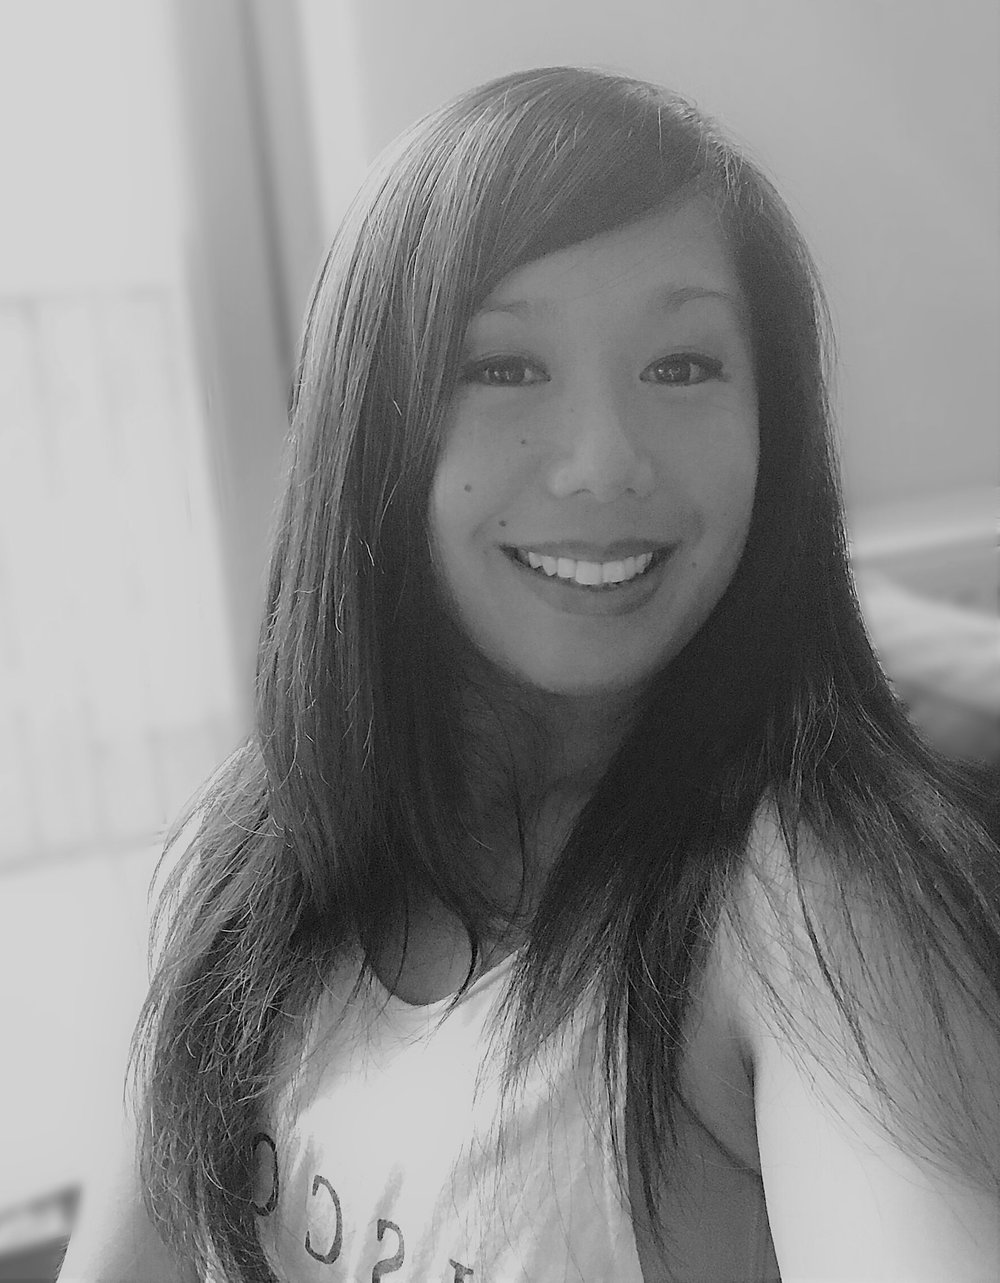 May-Ling Foo - May-Ling started her yoga journey in 2010. She was instantly hooked to how it made her feel physically and mentally and over the years she started to explore other styles of yoga, primarily vinyasa.As her passion grew, she wanted to share this passion with others and decided to start her yoga teacher training. In April 2017, she joined the first intake of the Frame 200hr Yoga Teacher Training led by Emily-Clare Hill and Michael James Wong.She loves to offer her students balance by offering a dynamic, yet calming practice, making sure to share some yoga wisdom to take away when off the mat. She always aims to make yoga accessible to everyone, by breaking down poses in an easy to understand manner, encouraging students to further explore in their practice.